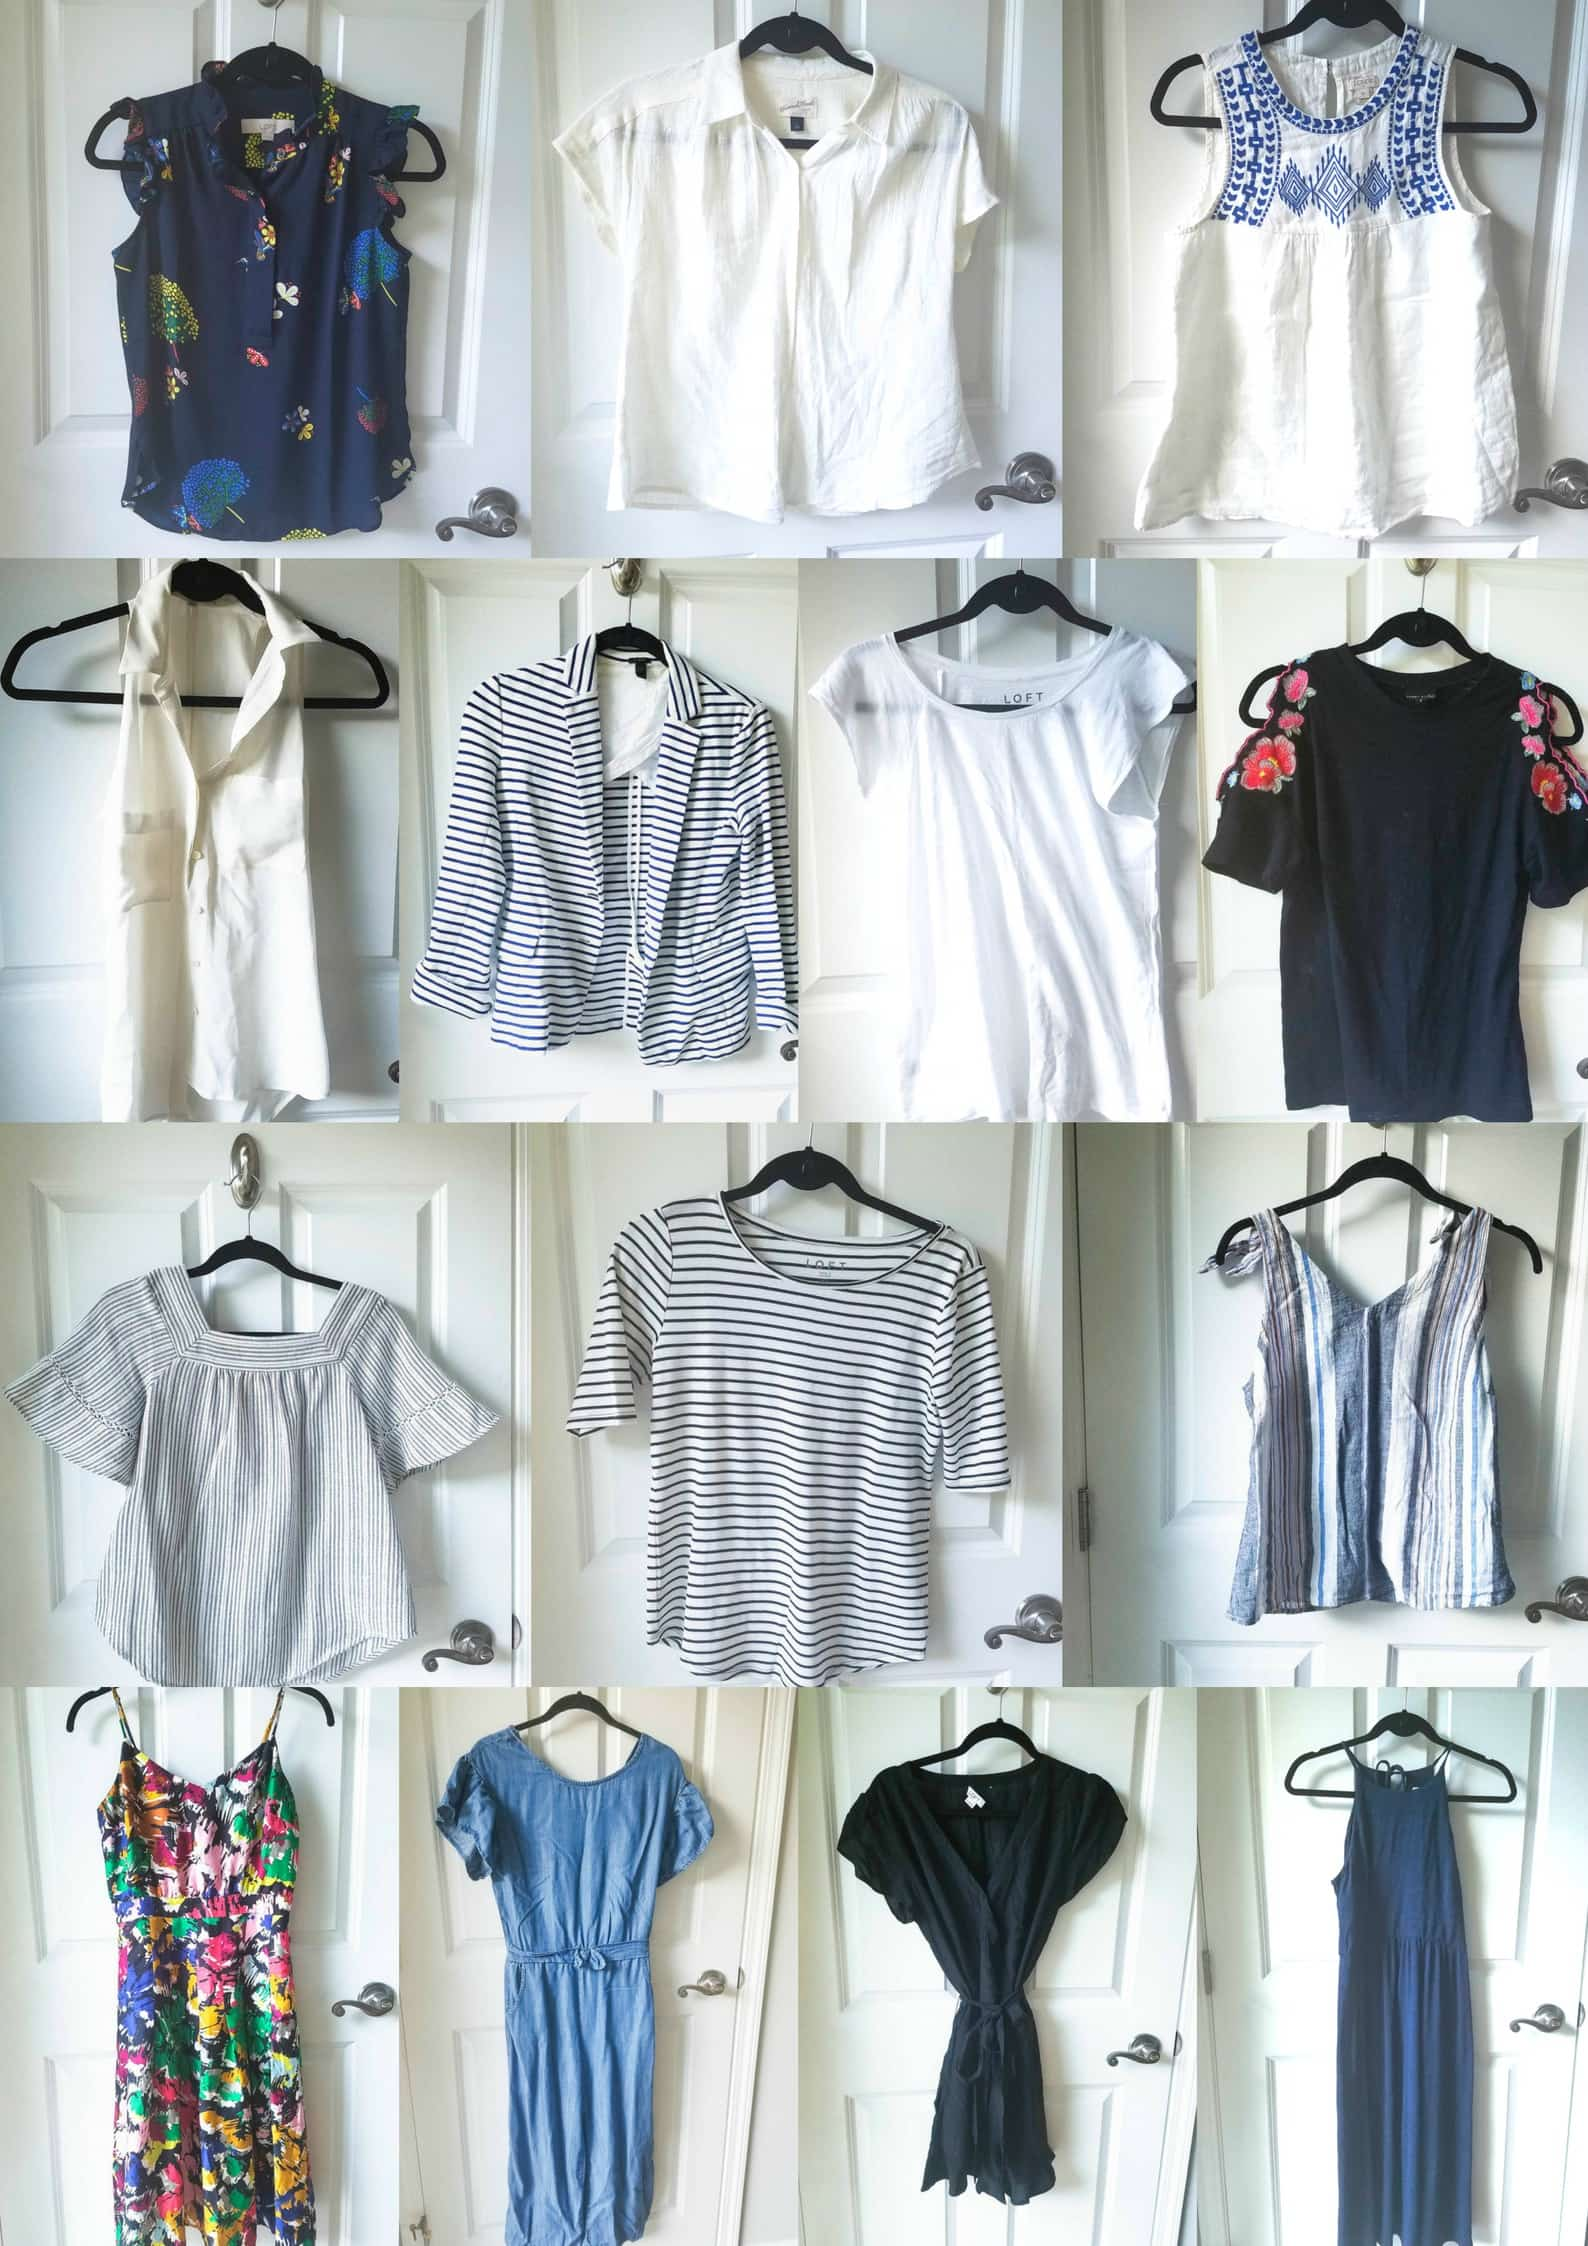 Summer 2018 Capsule Wardrobe from MomAdvice.com